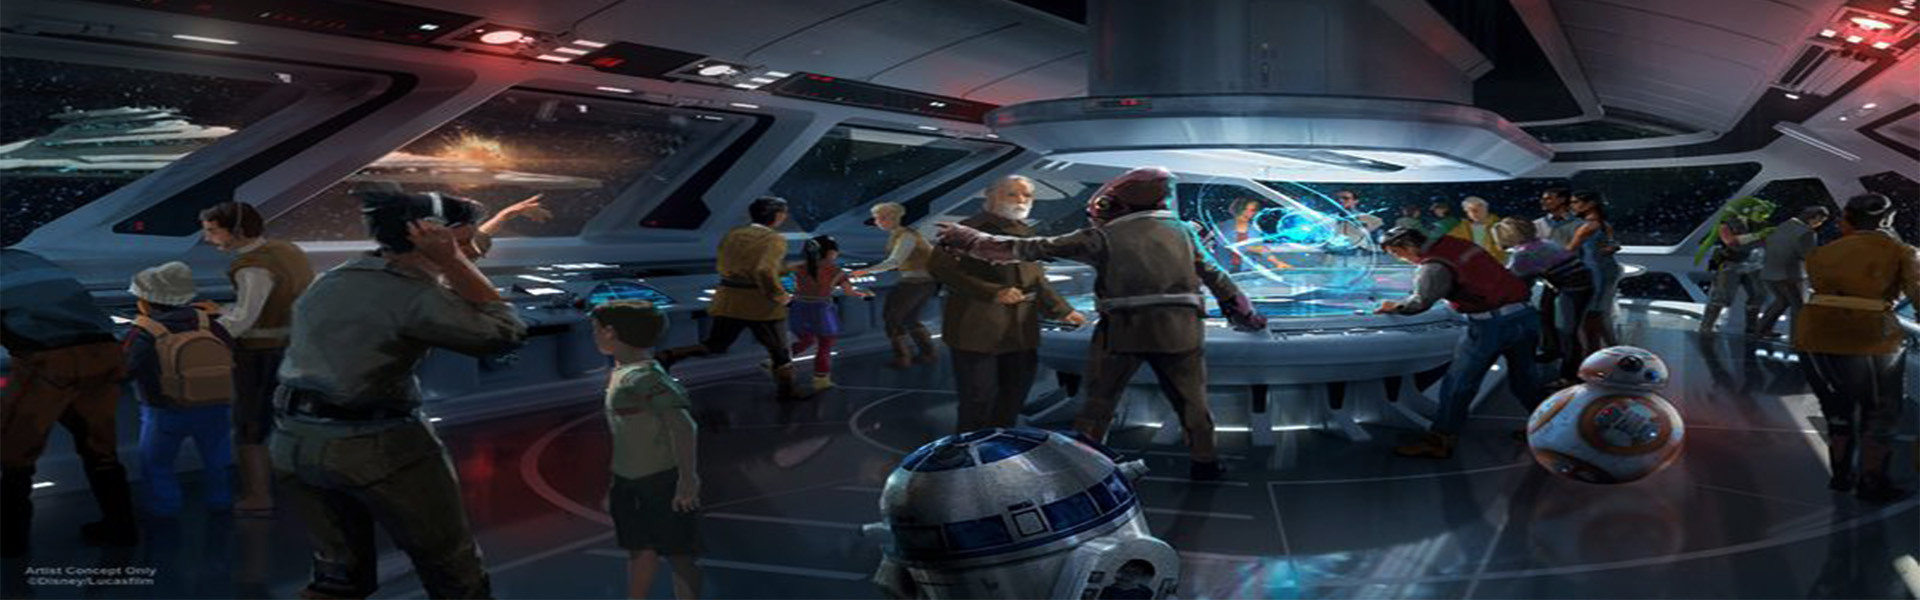 Disney quiere construir un hotel inspirado en Star Wars-Nation